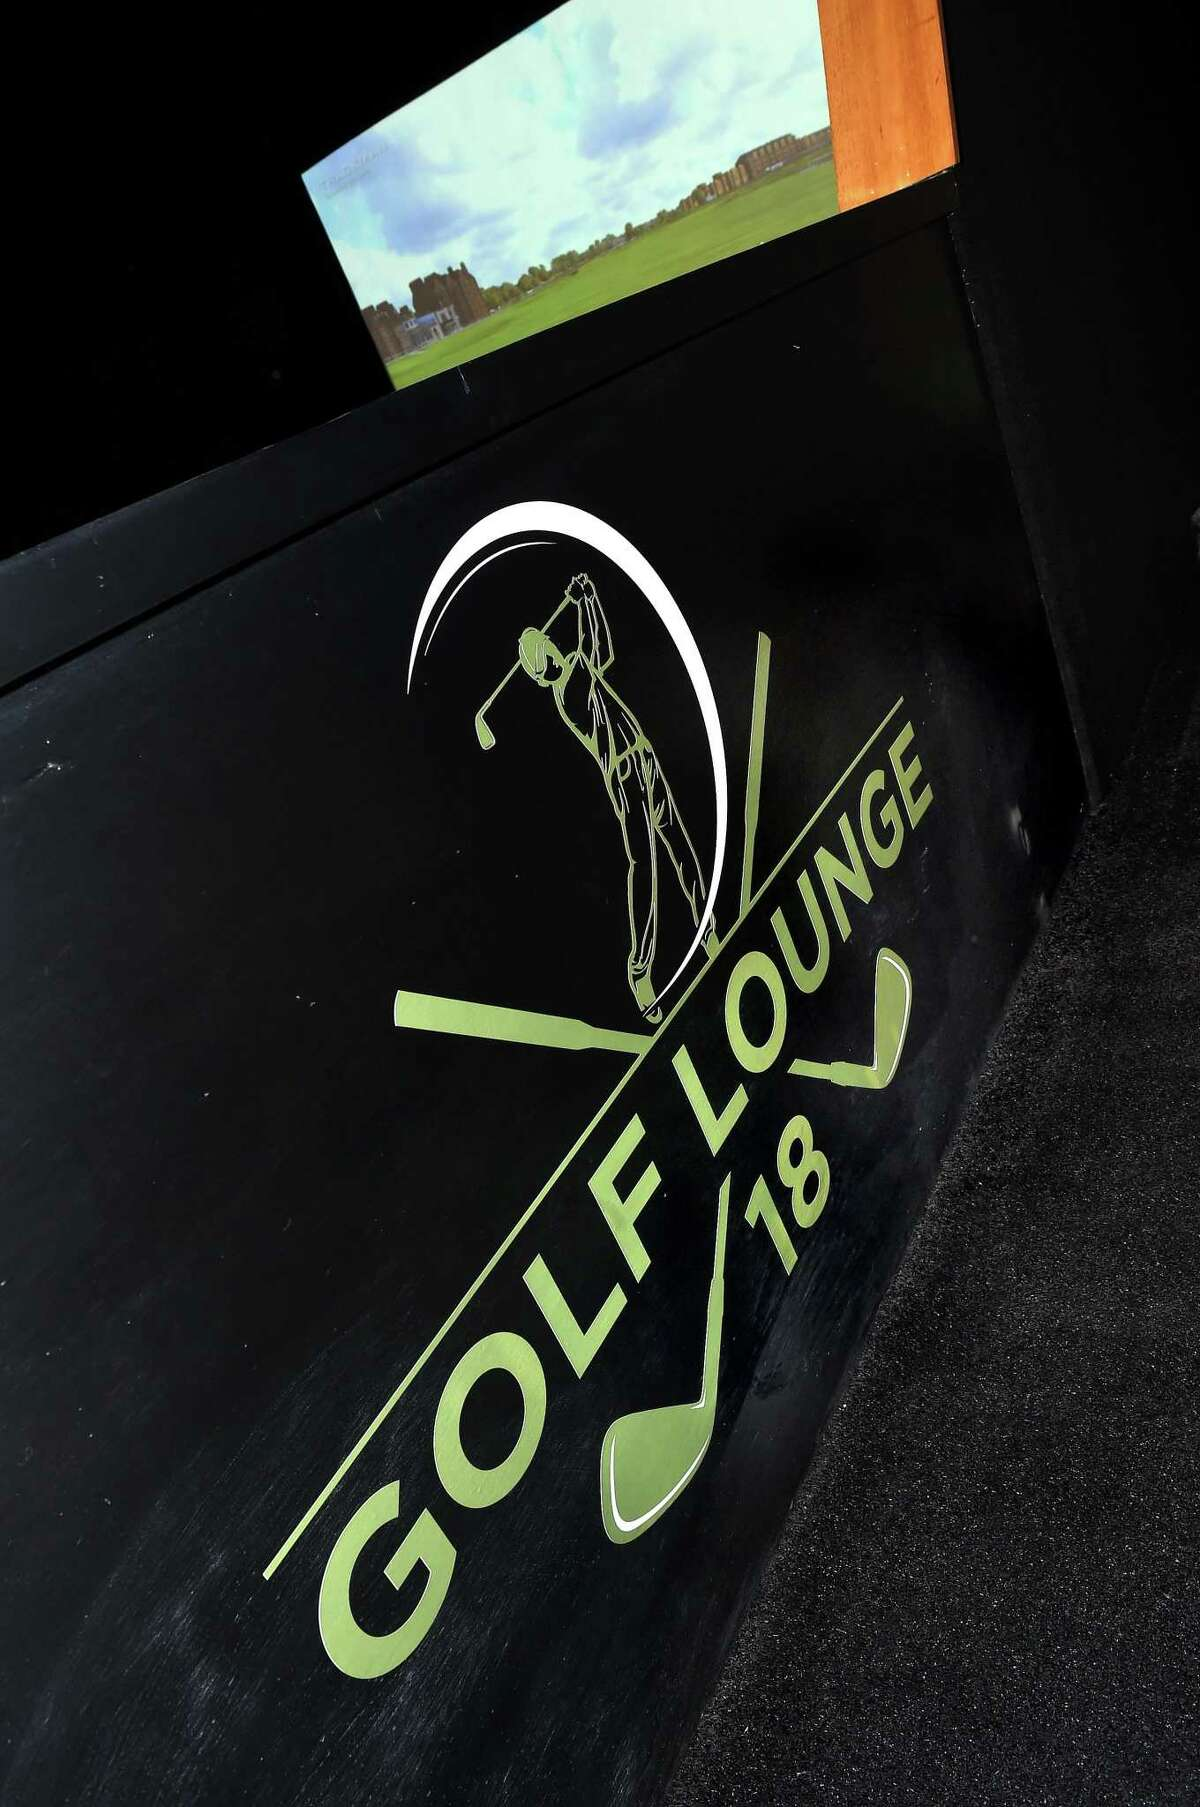 Golf Lounge 18, a virtual reality golfing lounge, is set to open in Orange.